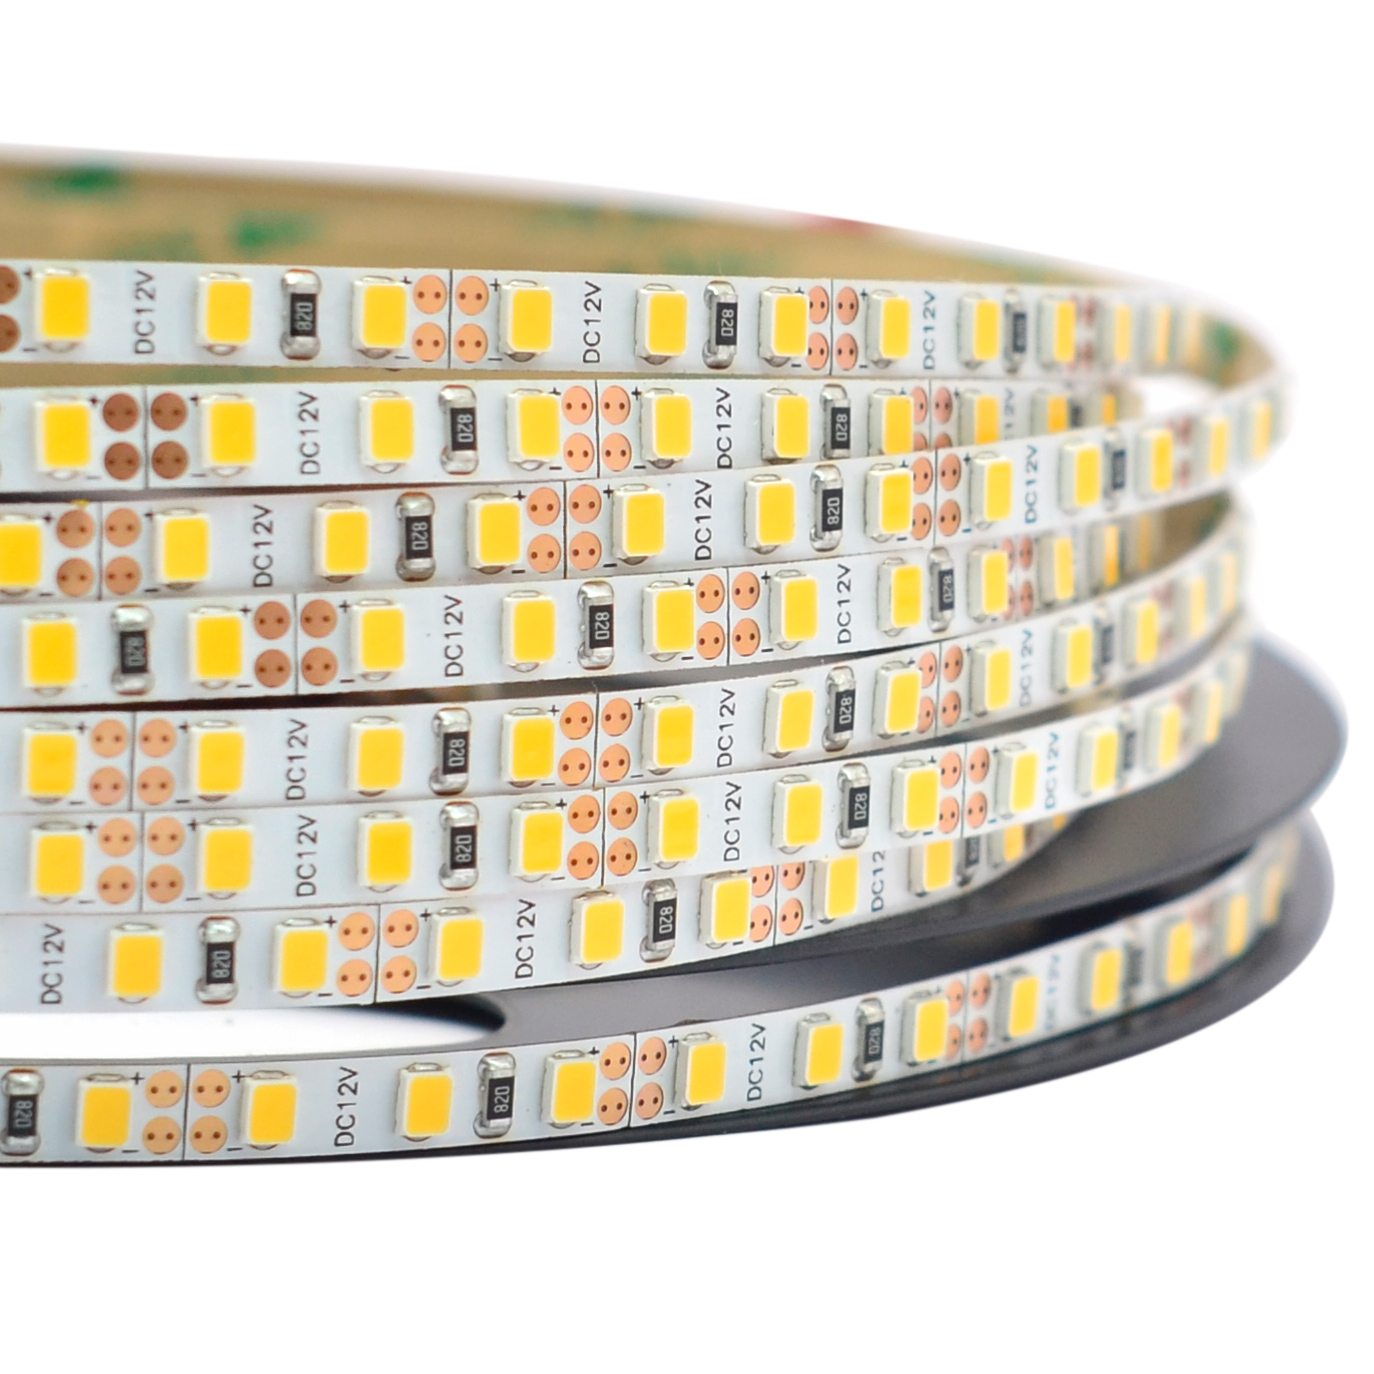 2835 smd flexible led strip lights. Black Bedroom Furniture Sets. Home Design Ideas